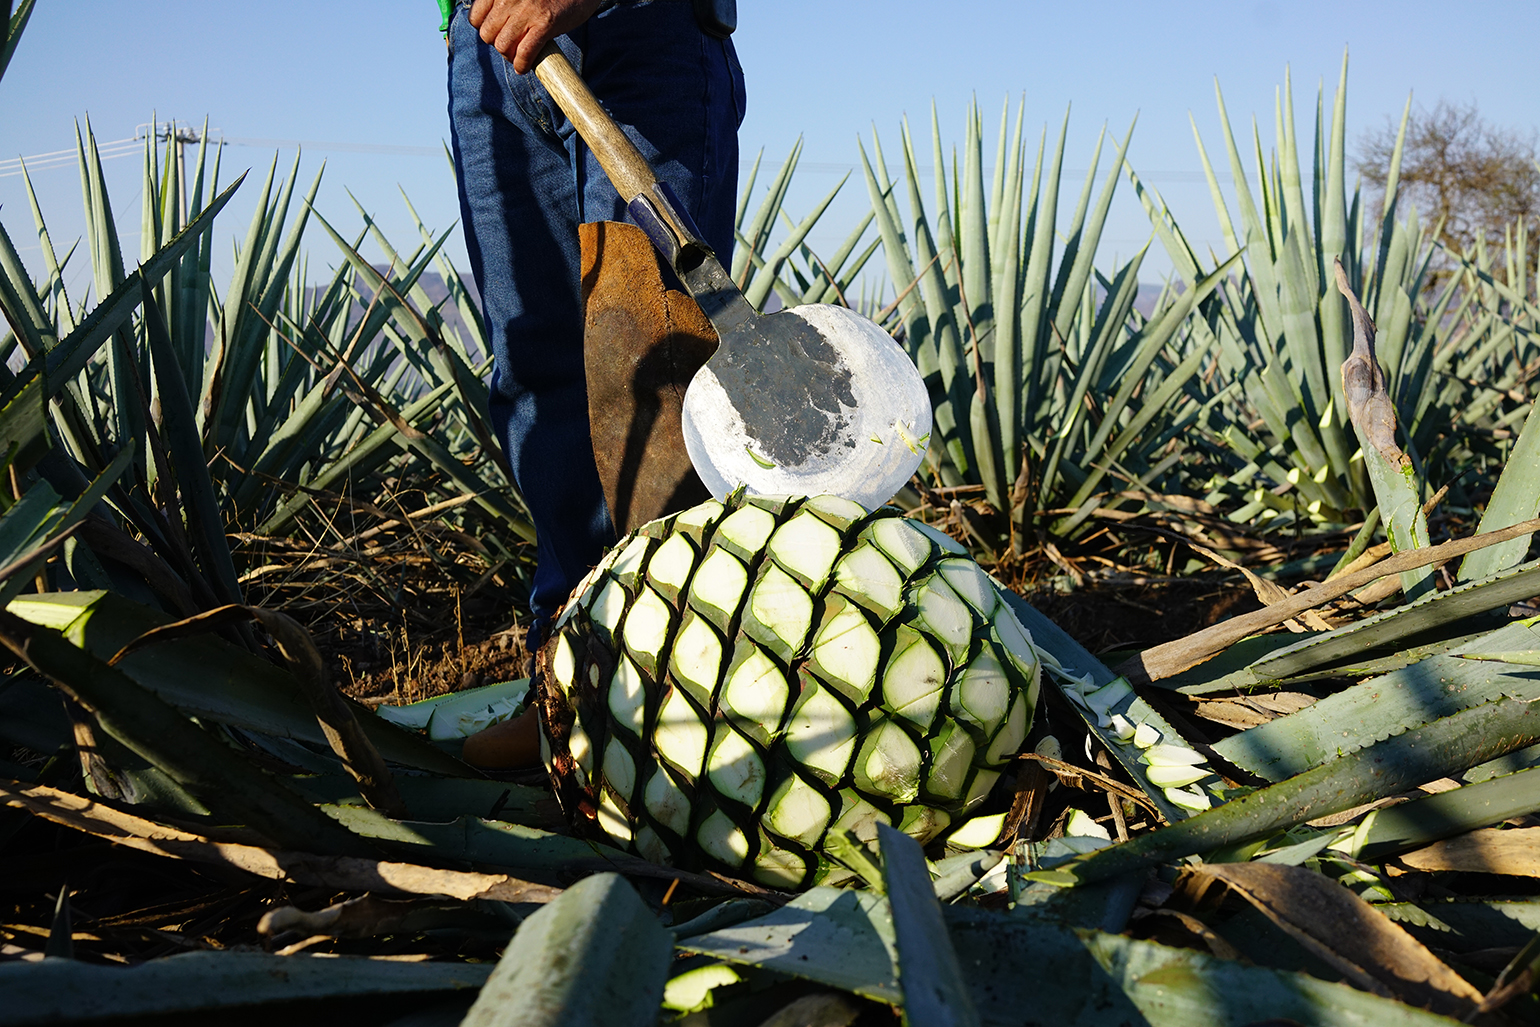 Cazadores_Agave-Lifecycle_Agave-Field-Pina-1.jpg